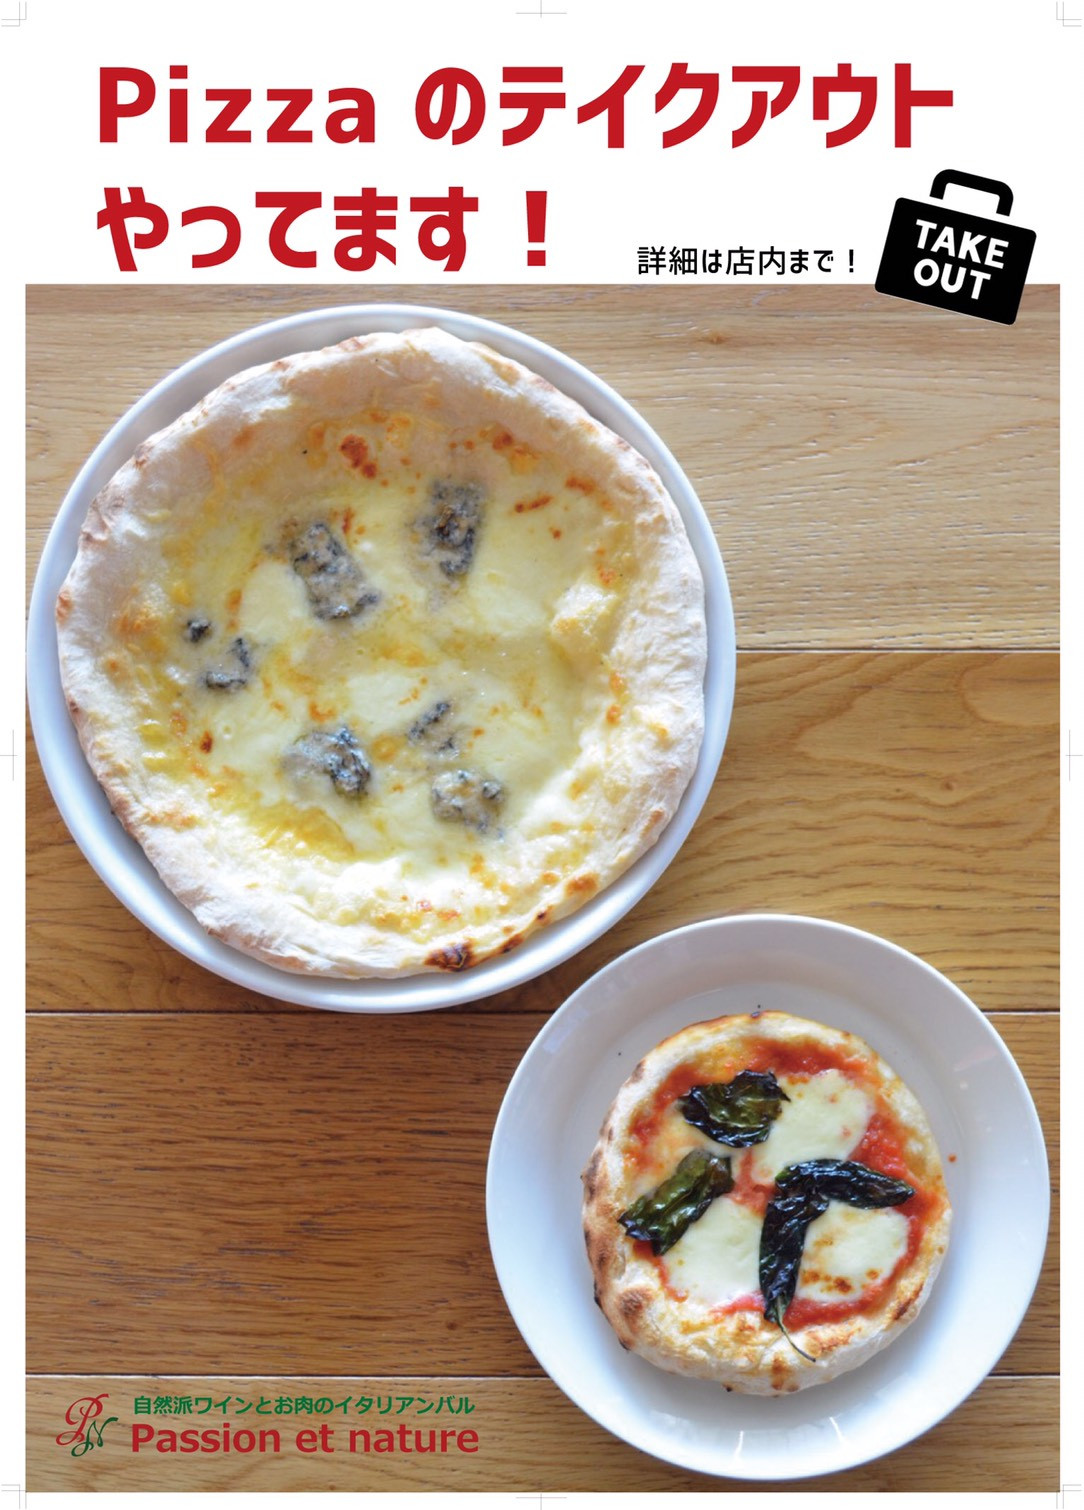 PIZZAのTAKE OUT始めました!